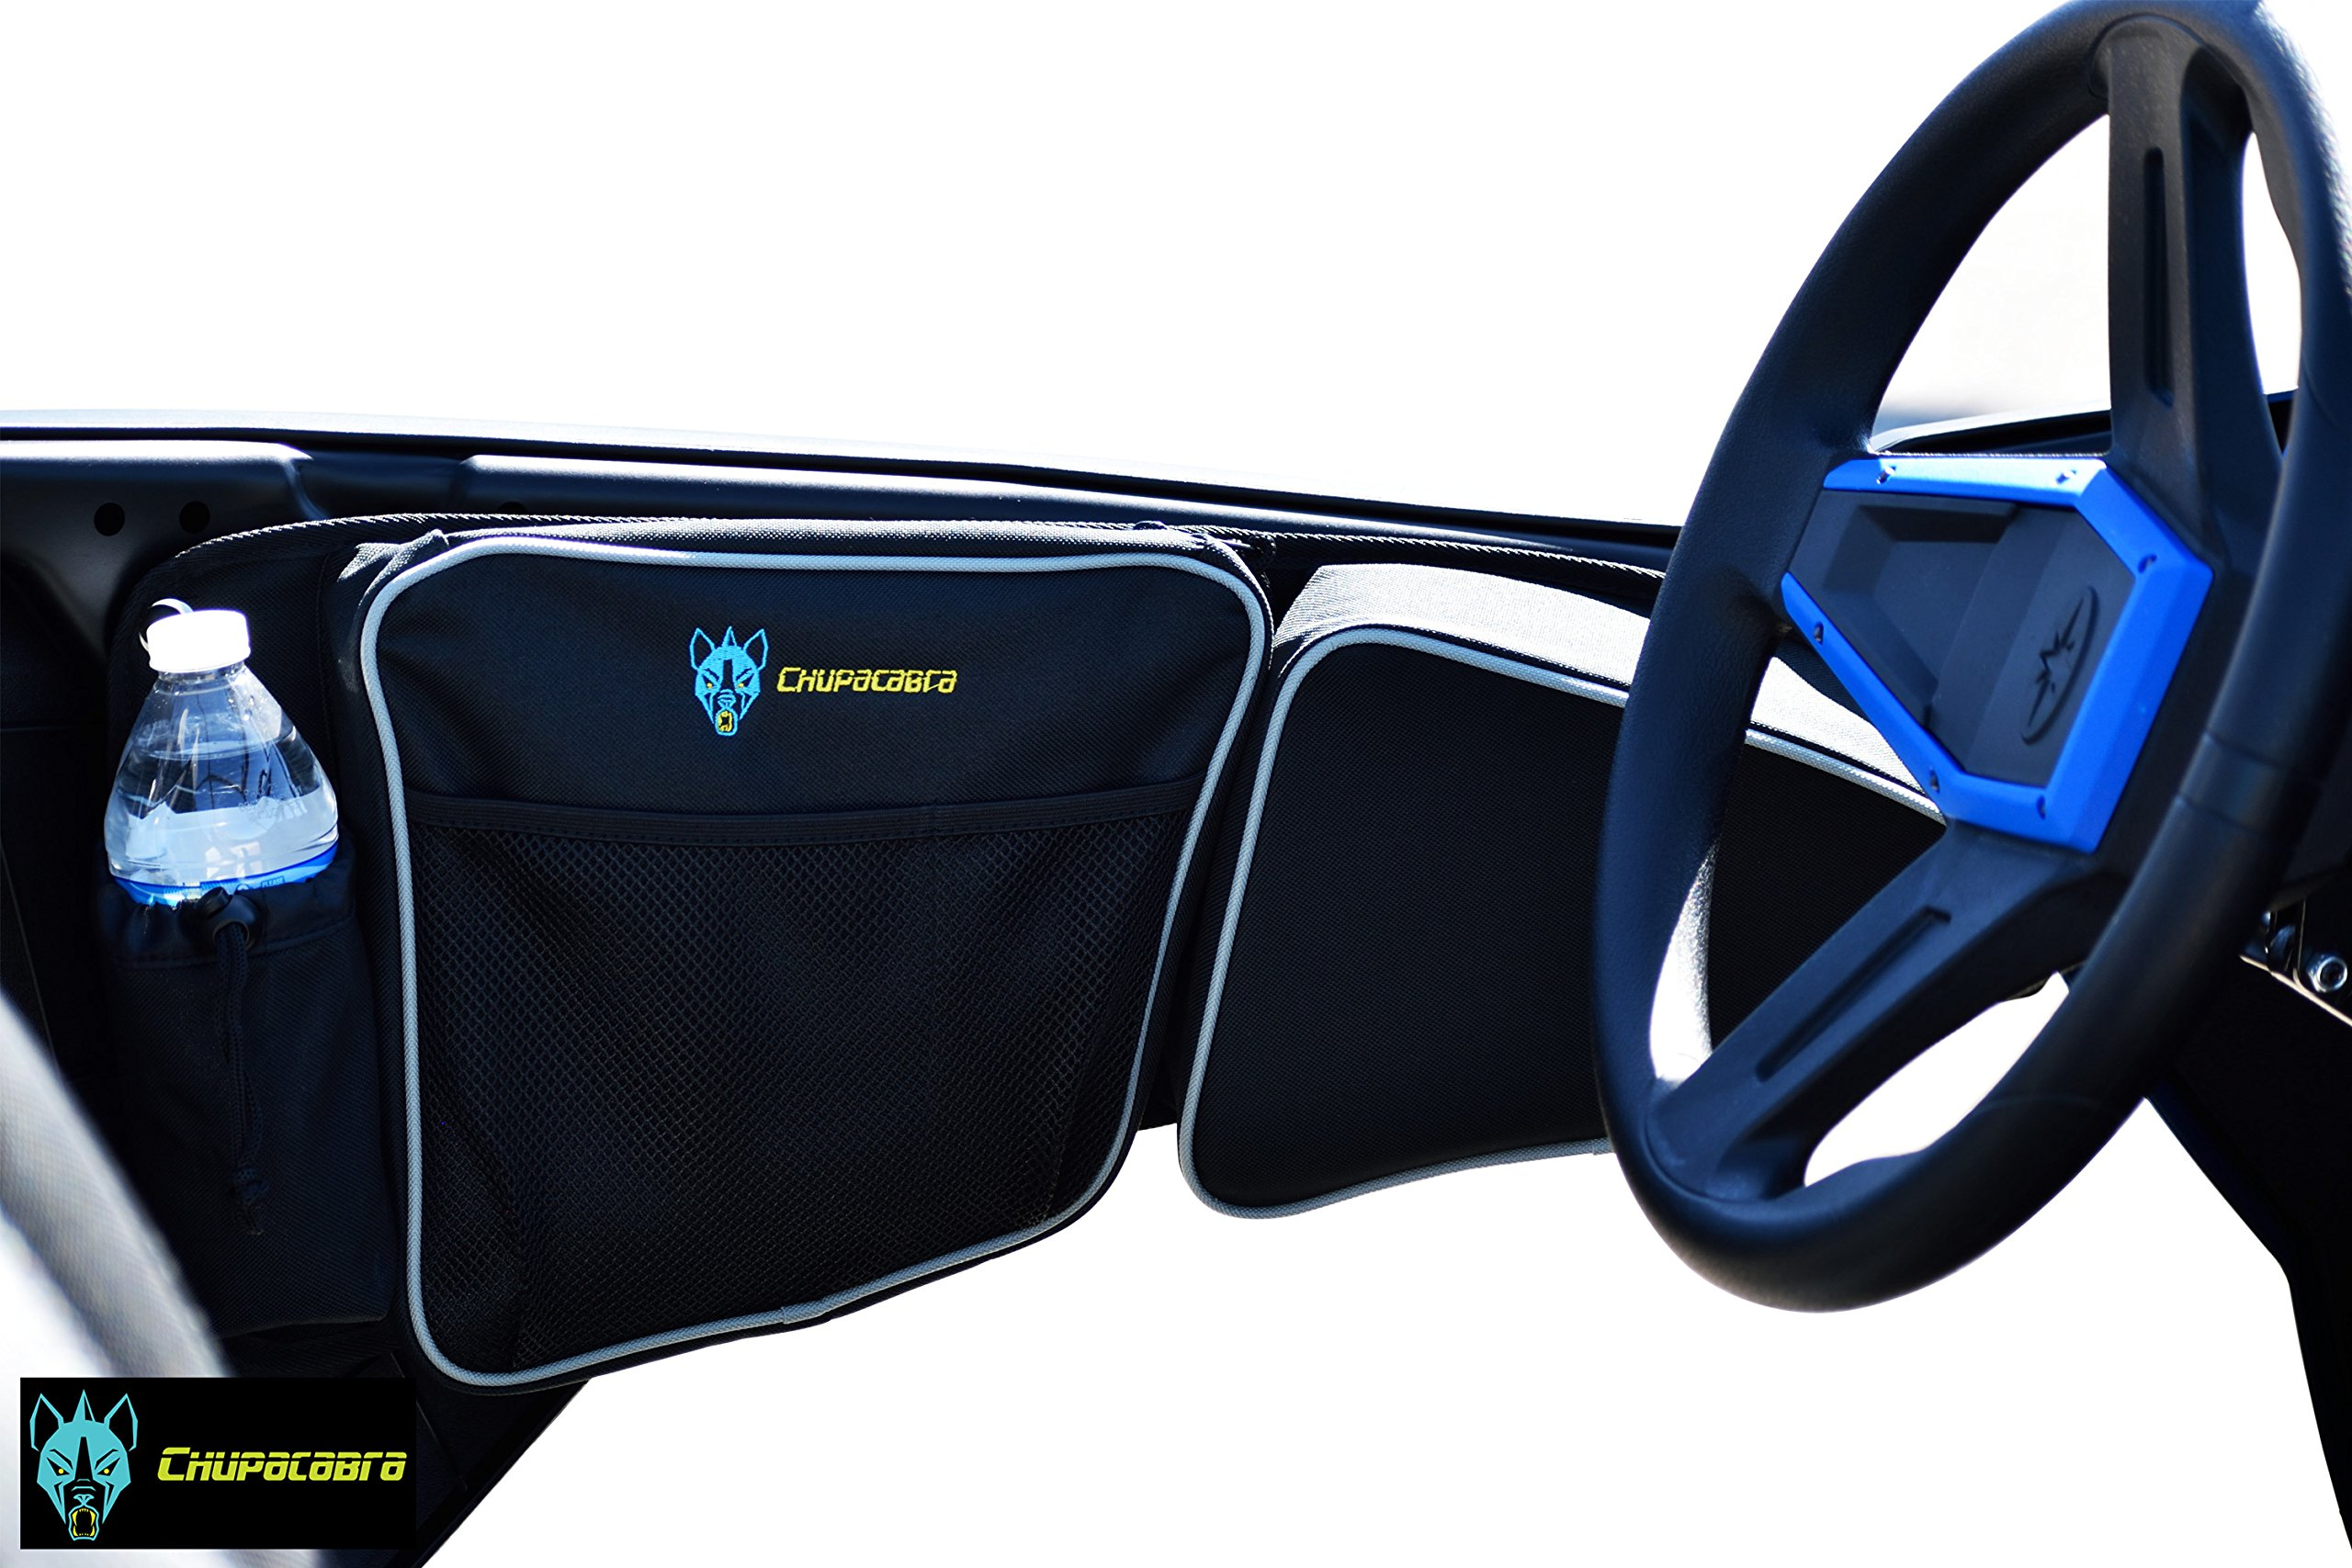 Chupacabra Offroad Door Bags RZR Turbo 1000 900S Passenger and Driver Side Storage Bag